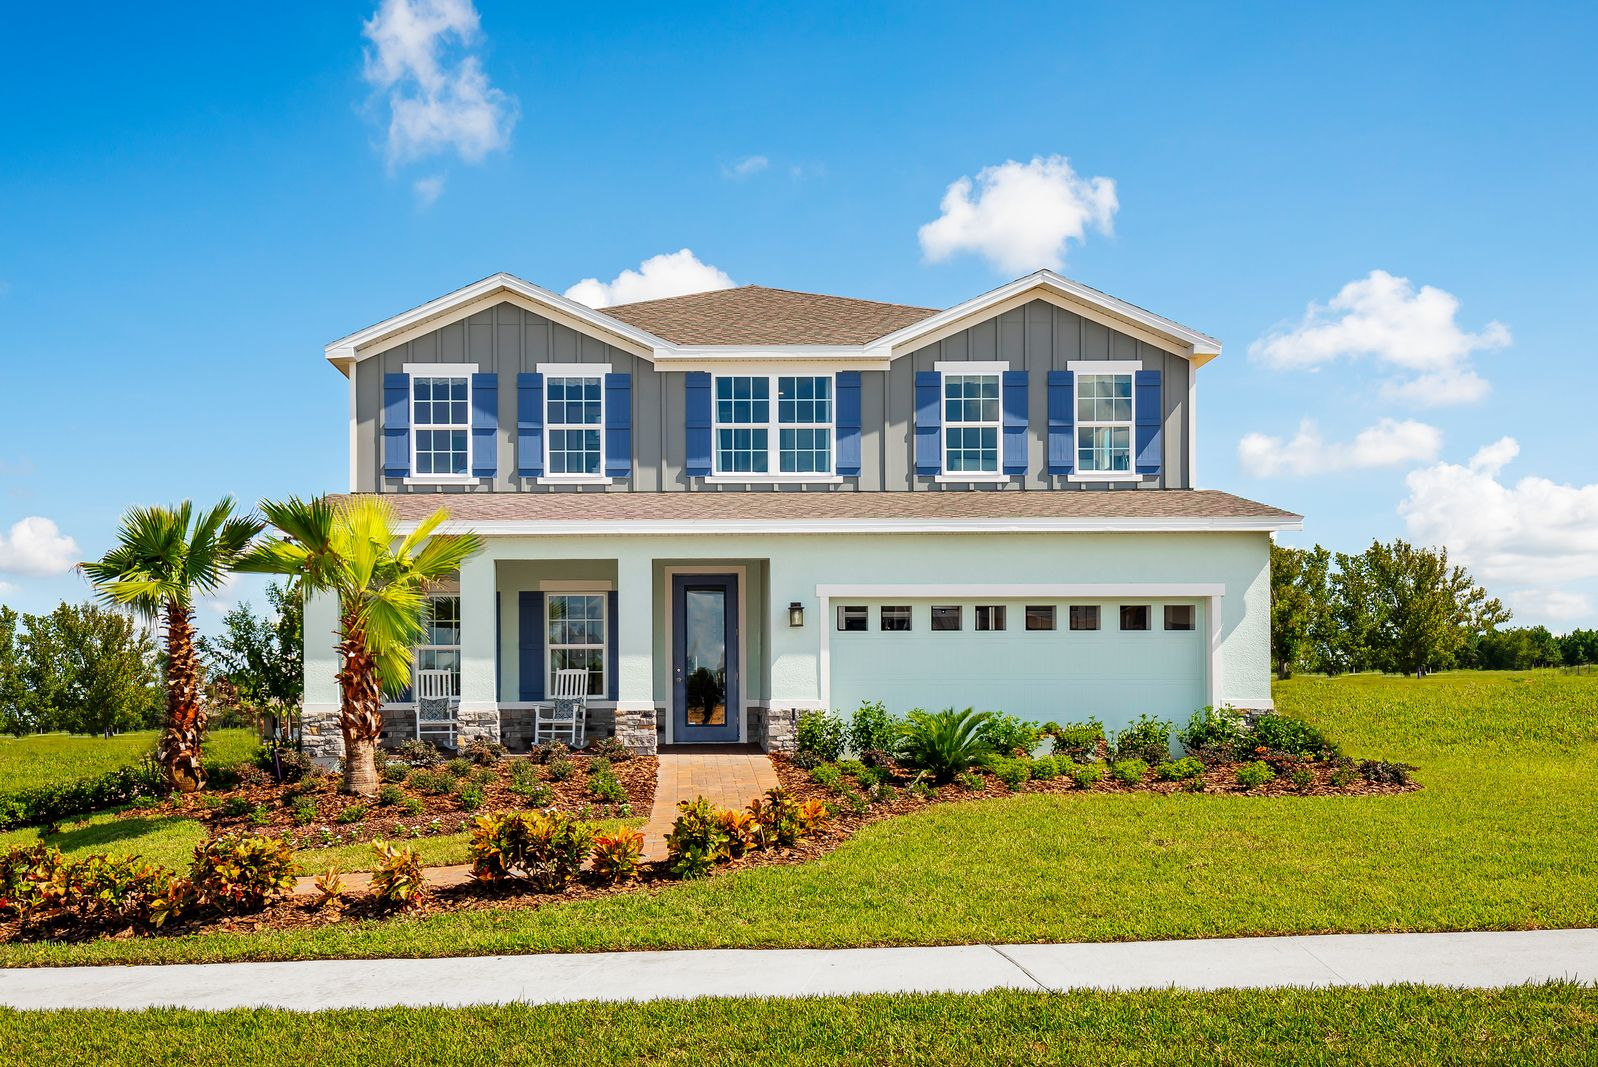 Welcome to Creekside in Kissimmee, FL:If you're looking for a spacious home in a gated, resort-style community with a beach-entry pool, playground, and NO CDD Fees, Join the VIP List todayfor more information aboutCreekside!